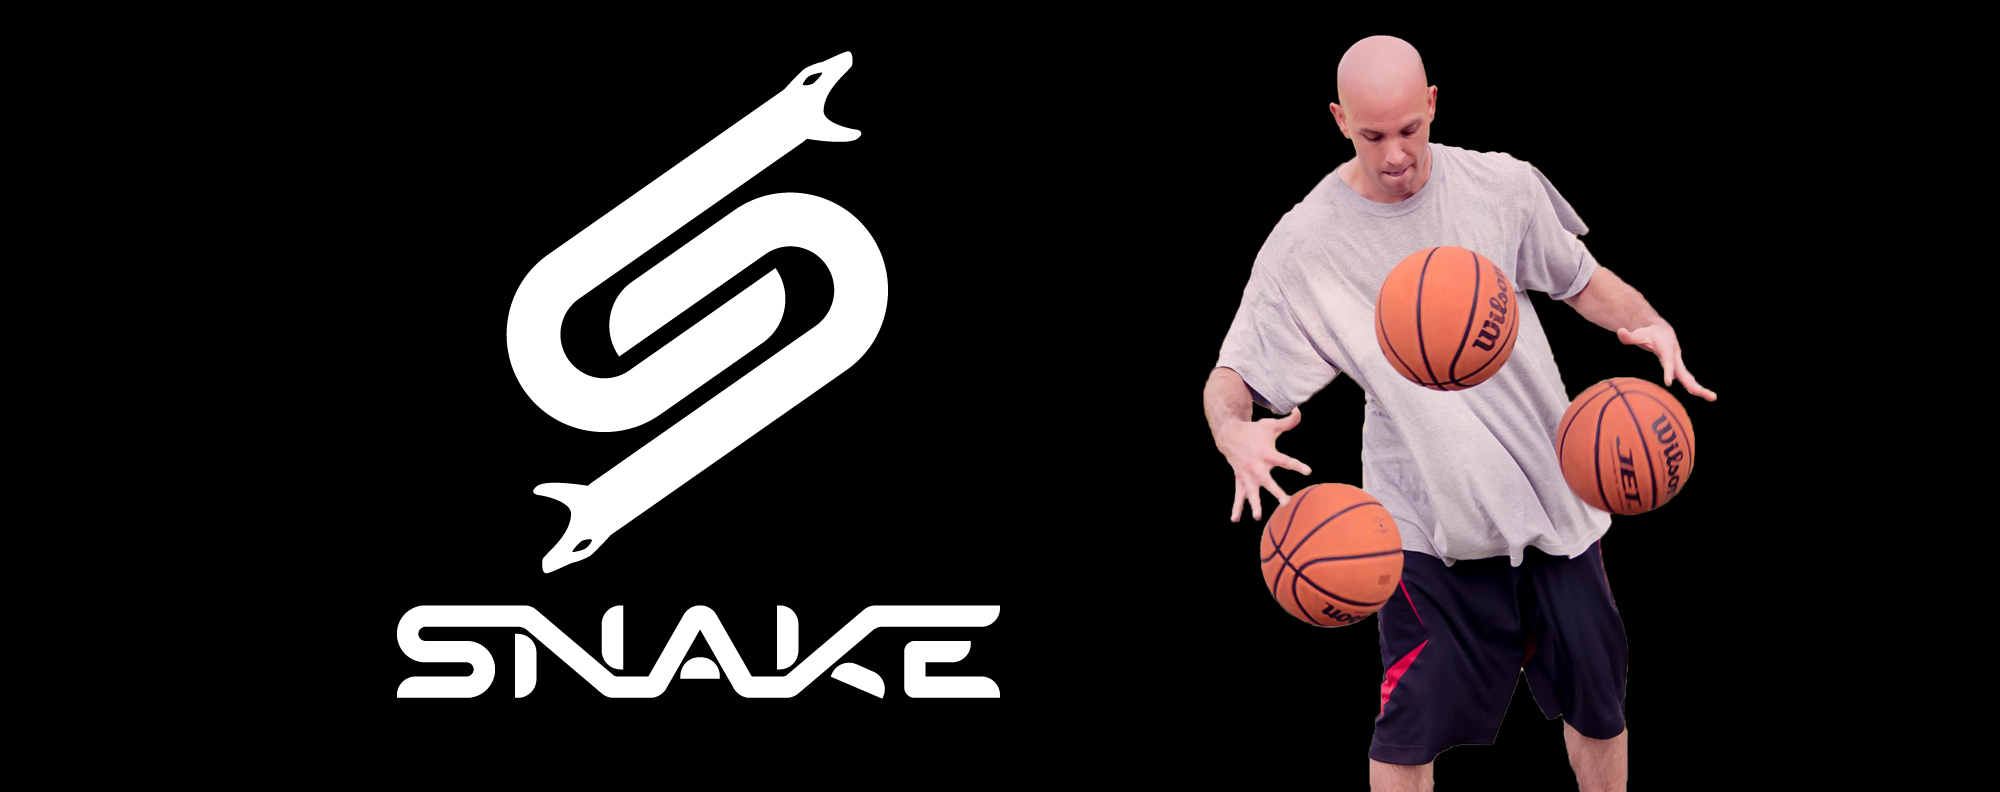 Snake – Basketball Ball Handling Trainer, Entertainer, and Motivational Speaker